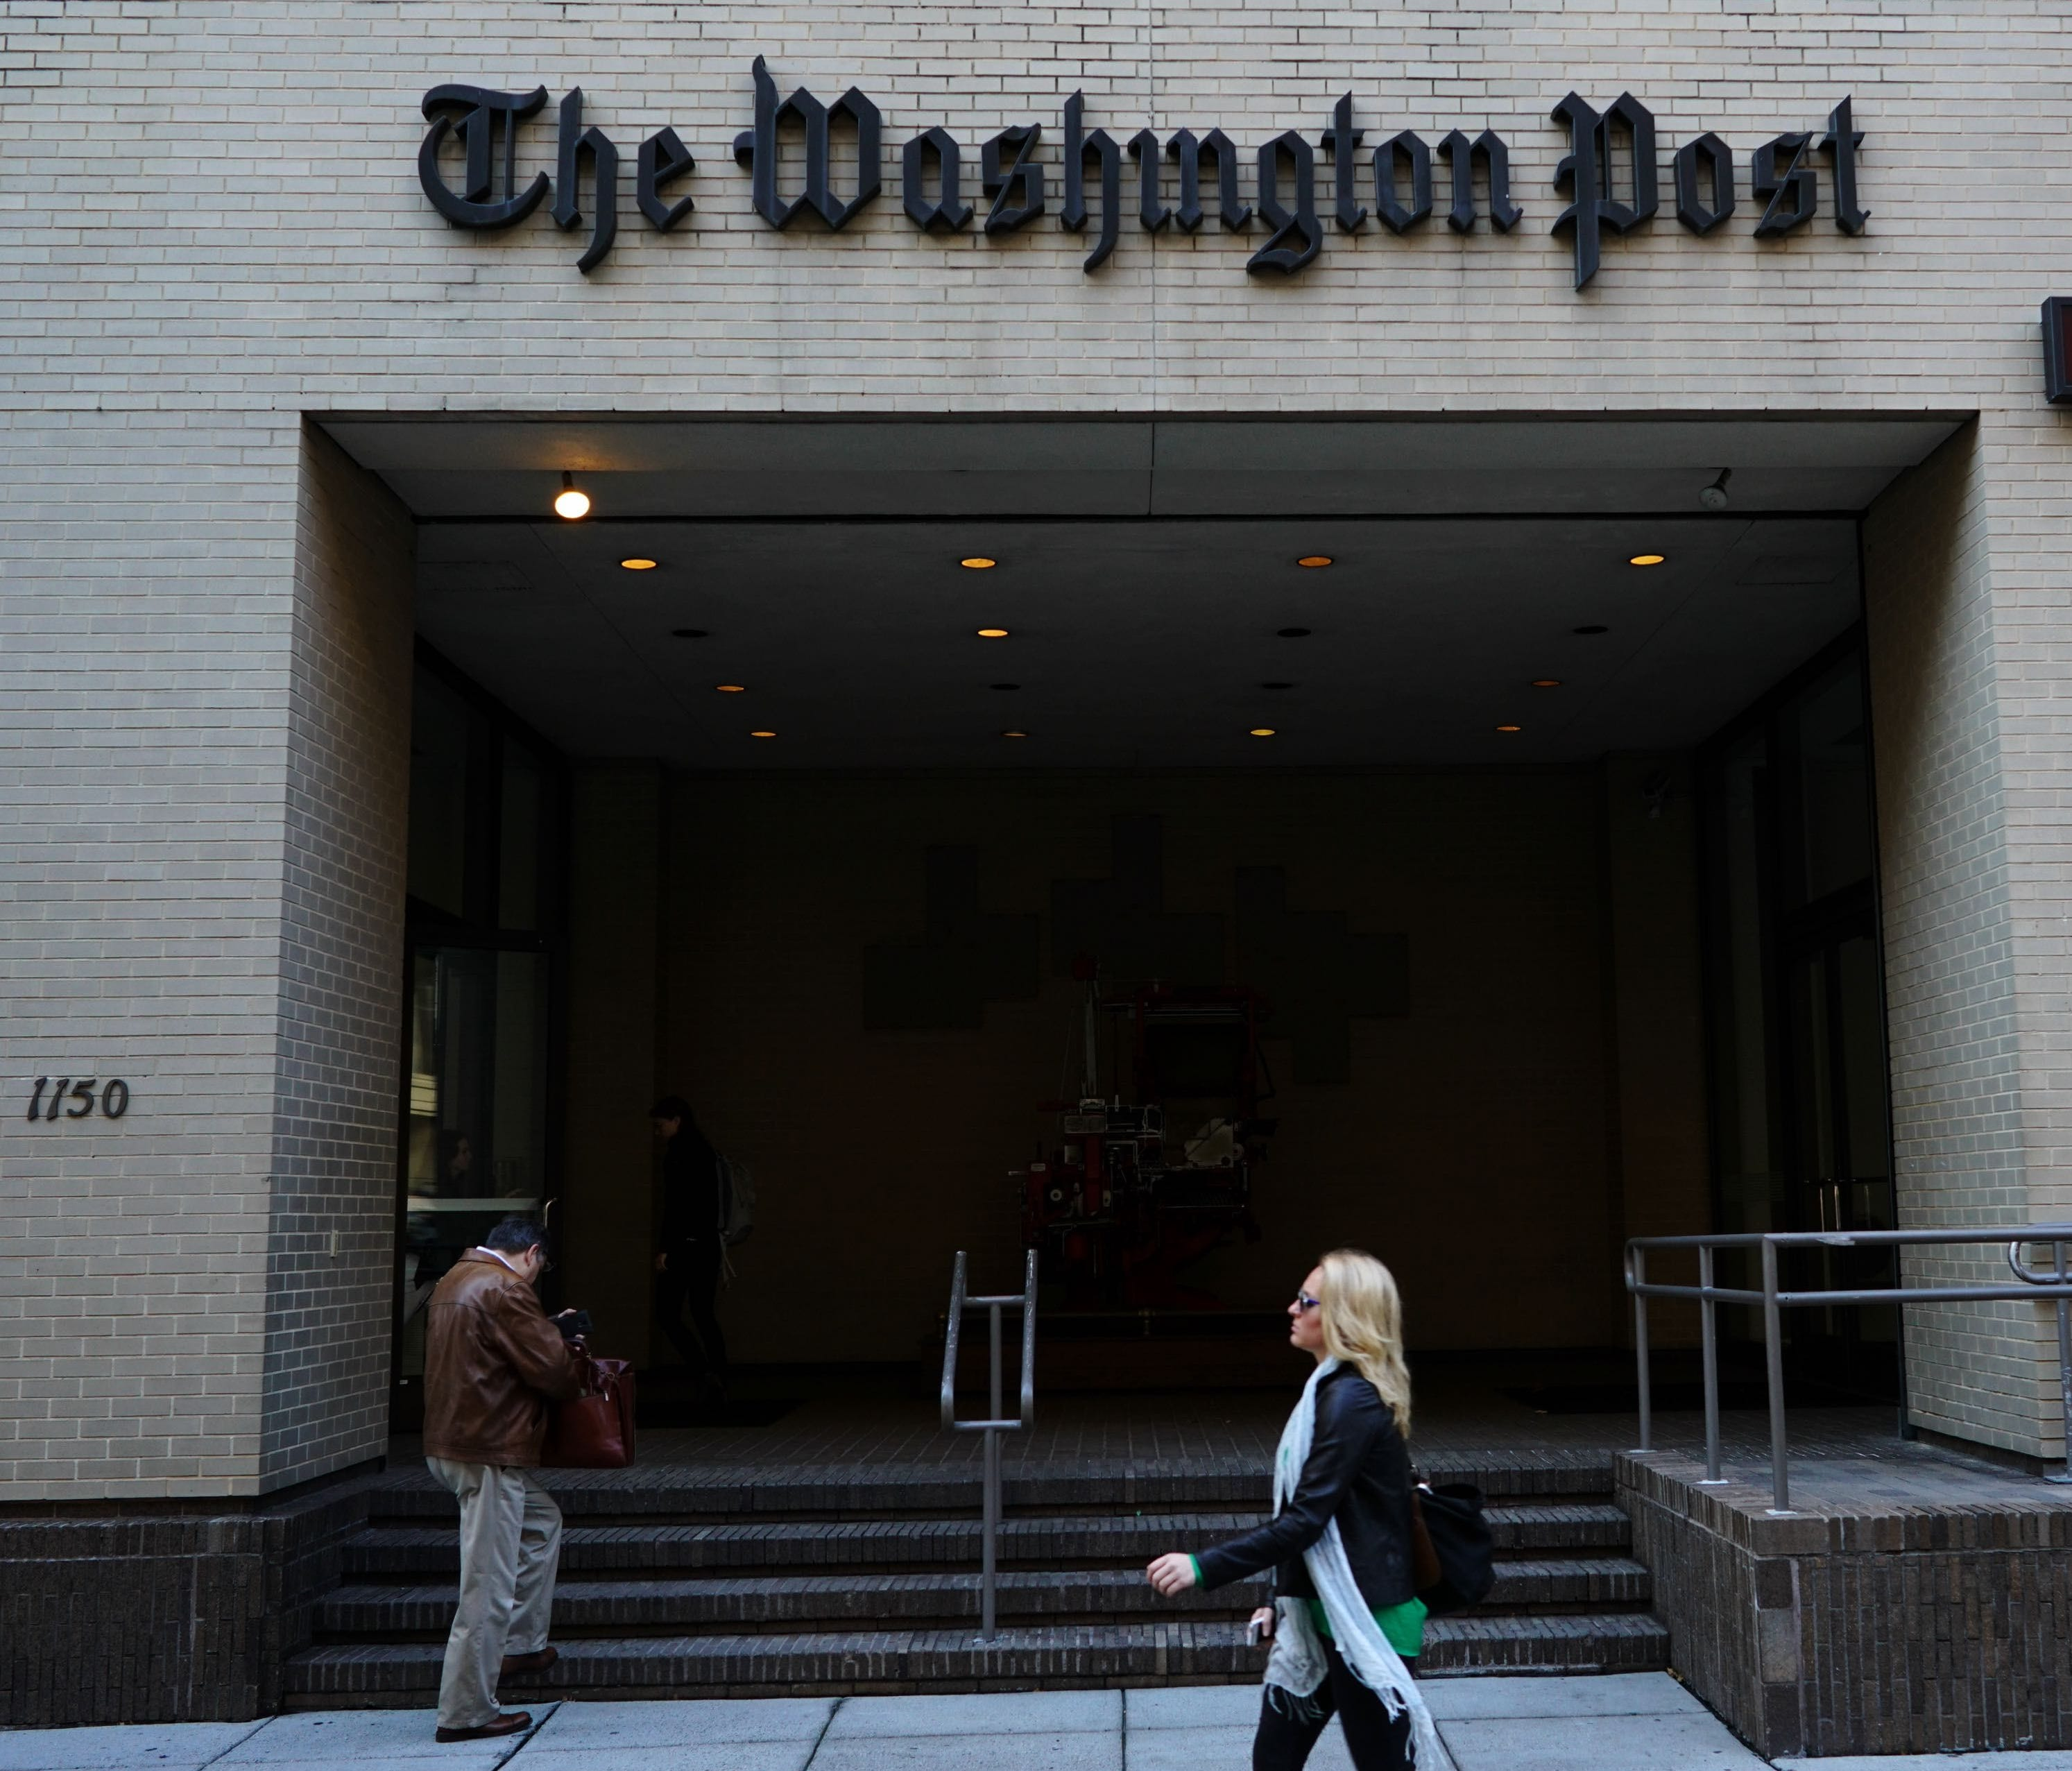 The front of the Washington Post building.